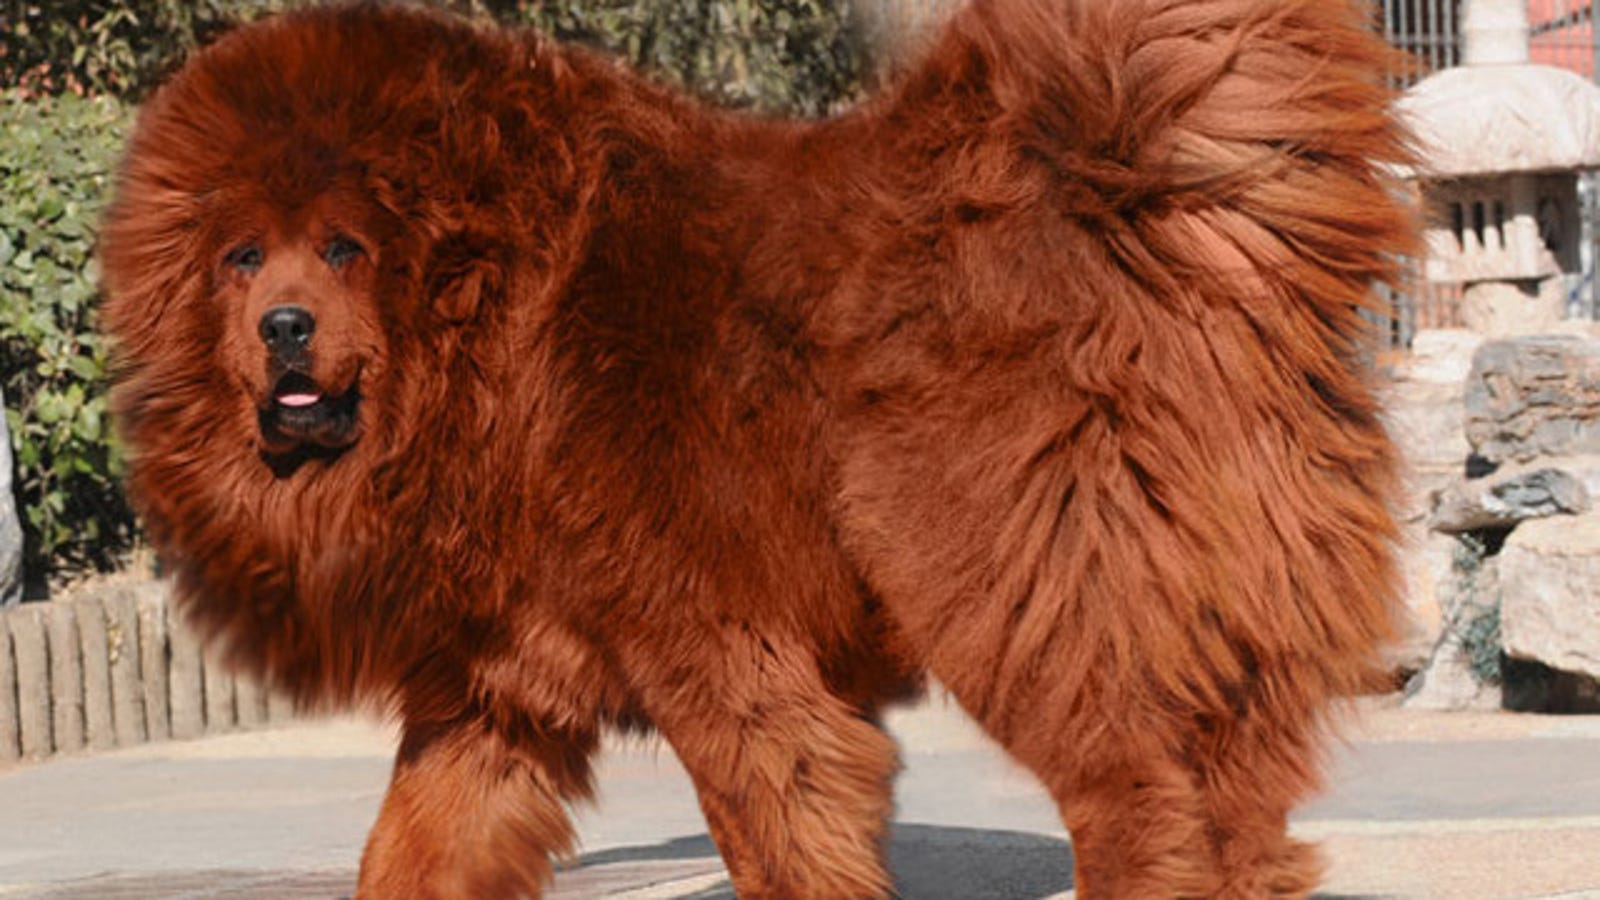 Chinese zoo tries to pass off a dog as a lion